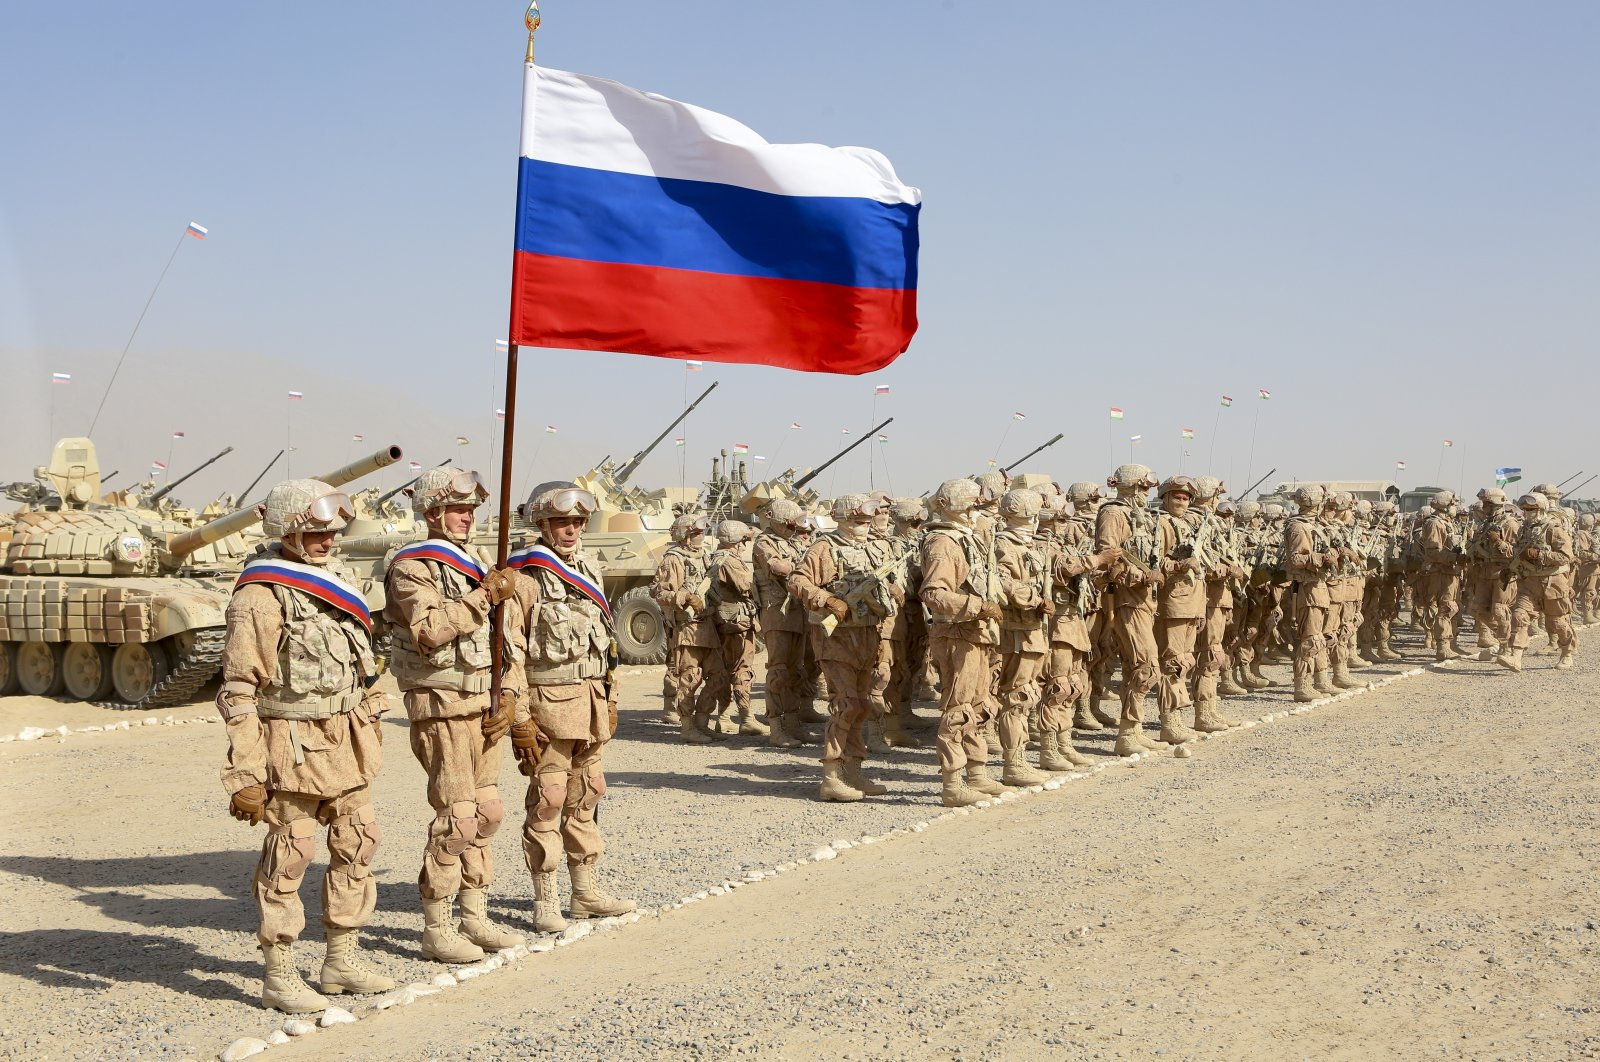 Russian troops line up before the start of joint military drills by Tajikistan and Uzbekistan at Harb-Maidon firing range about 20 kilometers (about 12 miles) north of the Tajik border with Afghanistan, in Tajikistan, Aug. 10, 2021. (AP Photo)